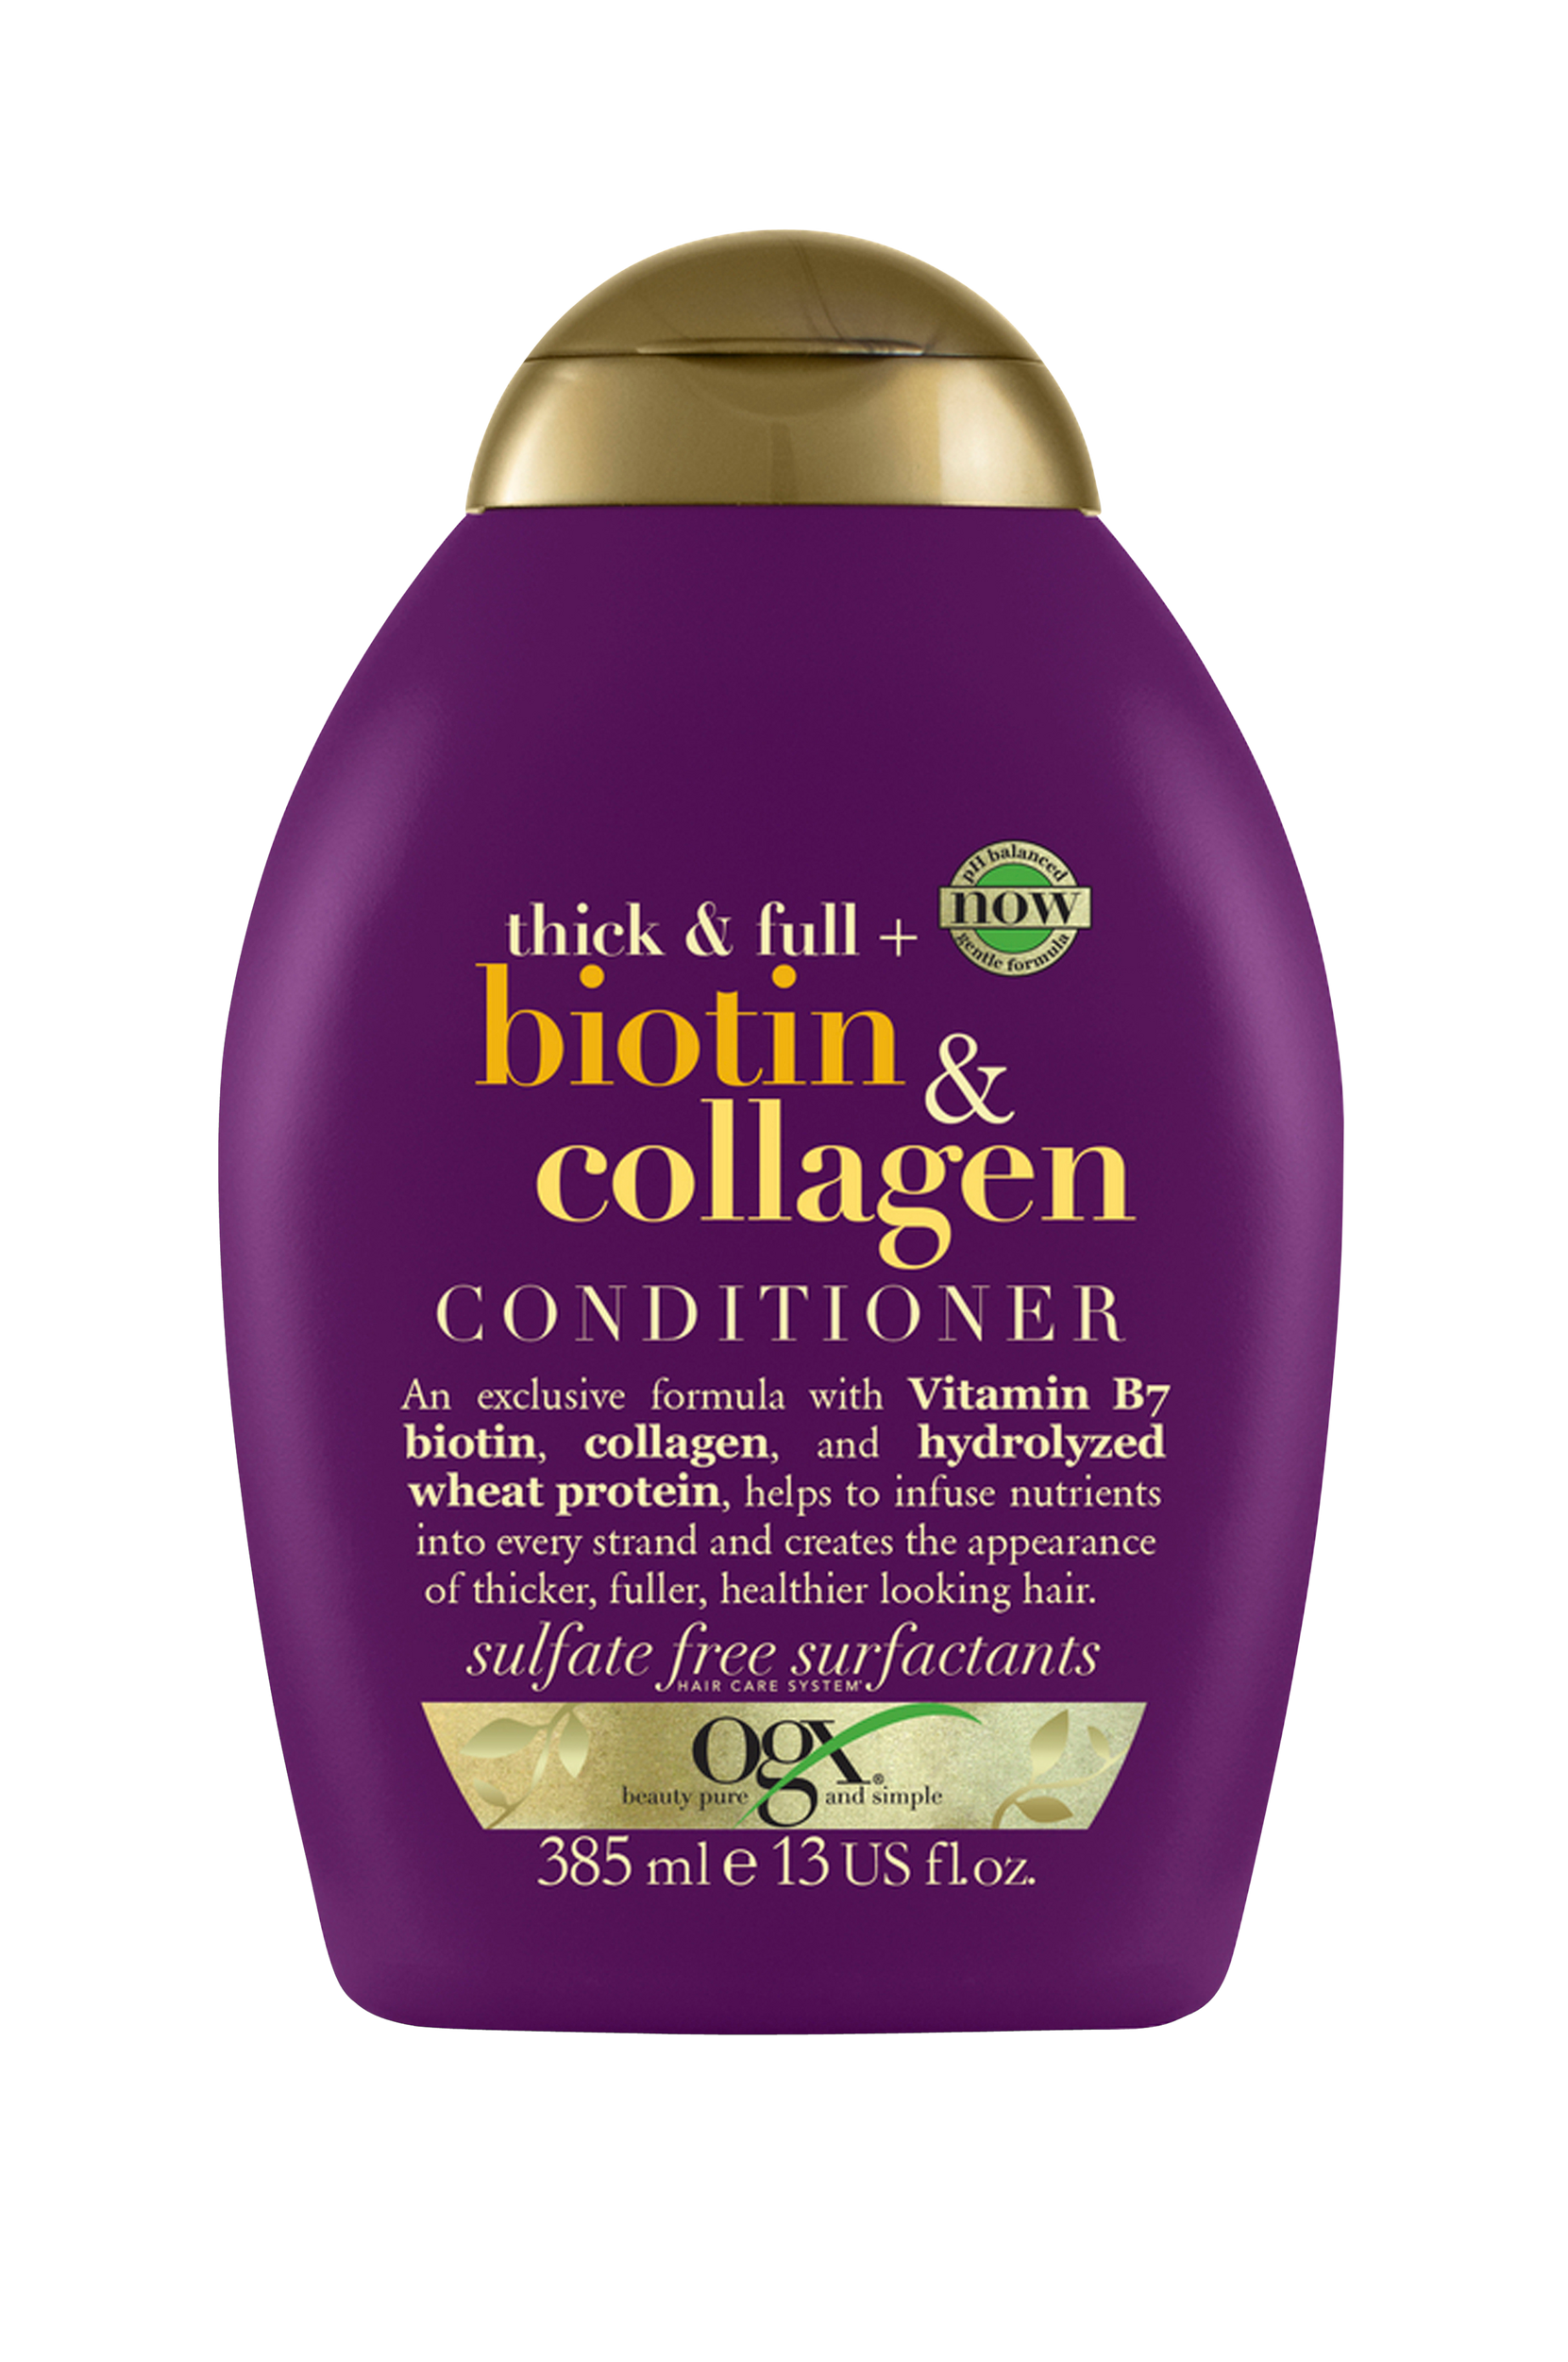 Biotin/Collagen Conditioner 385 ml